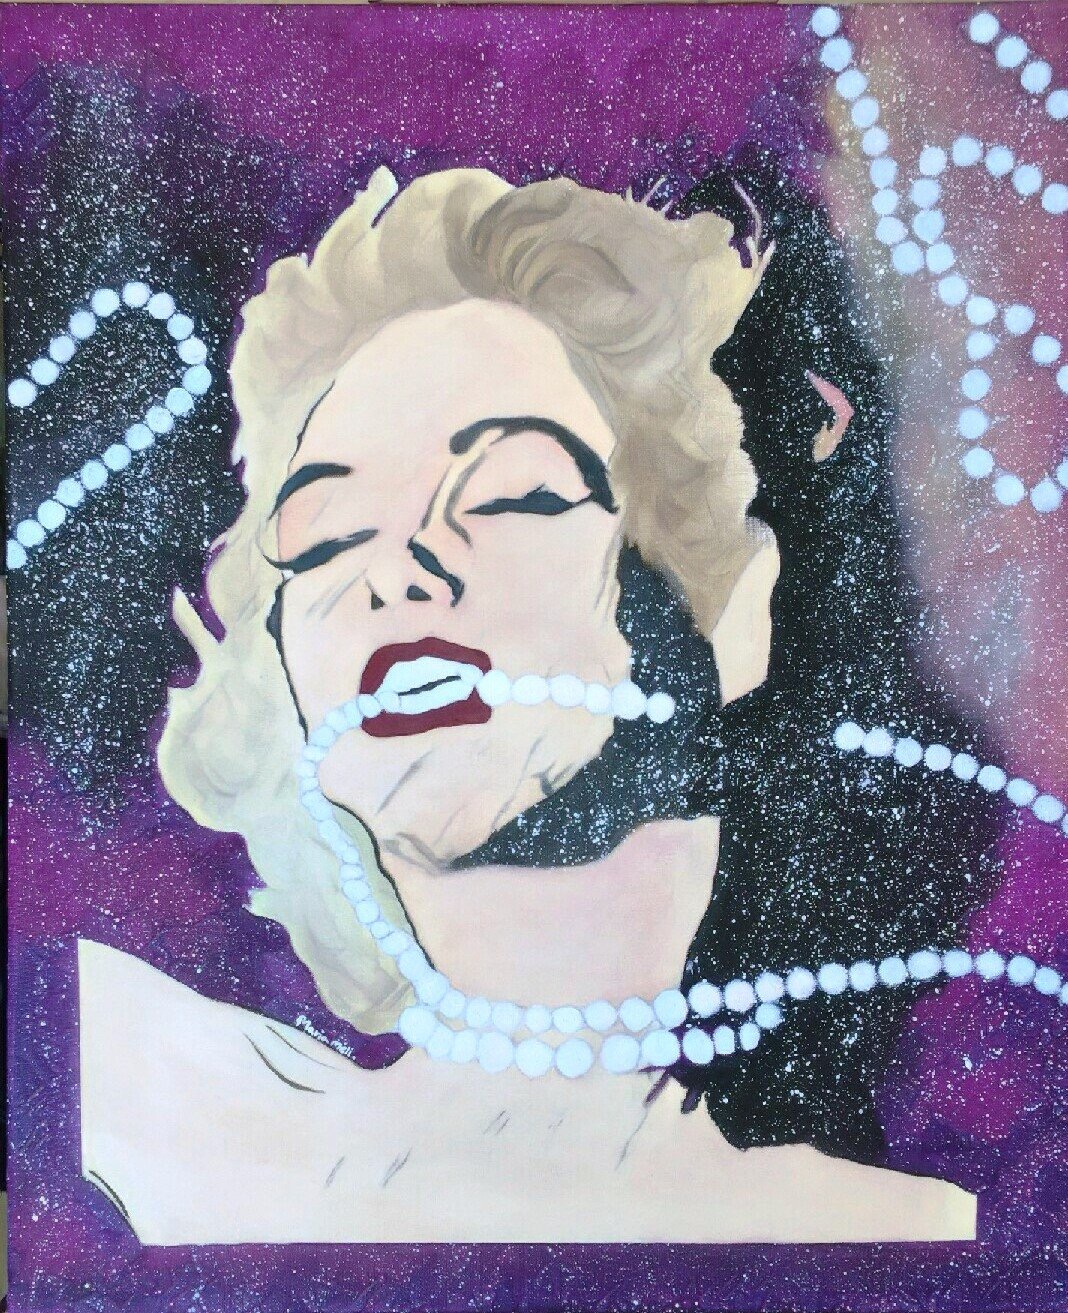 Marilyn Monroe in the Space artwork by Maria Meli - art listed for sale on Artplode